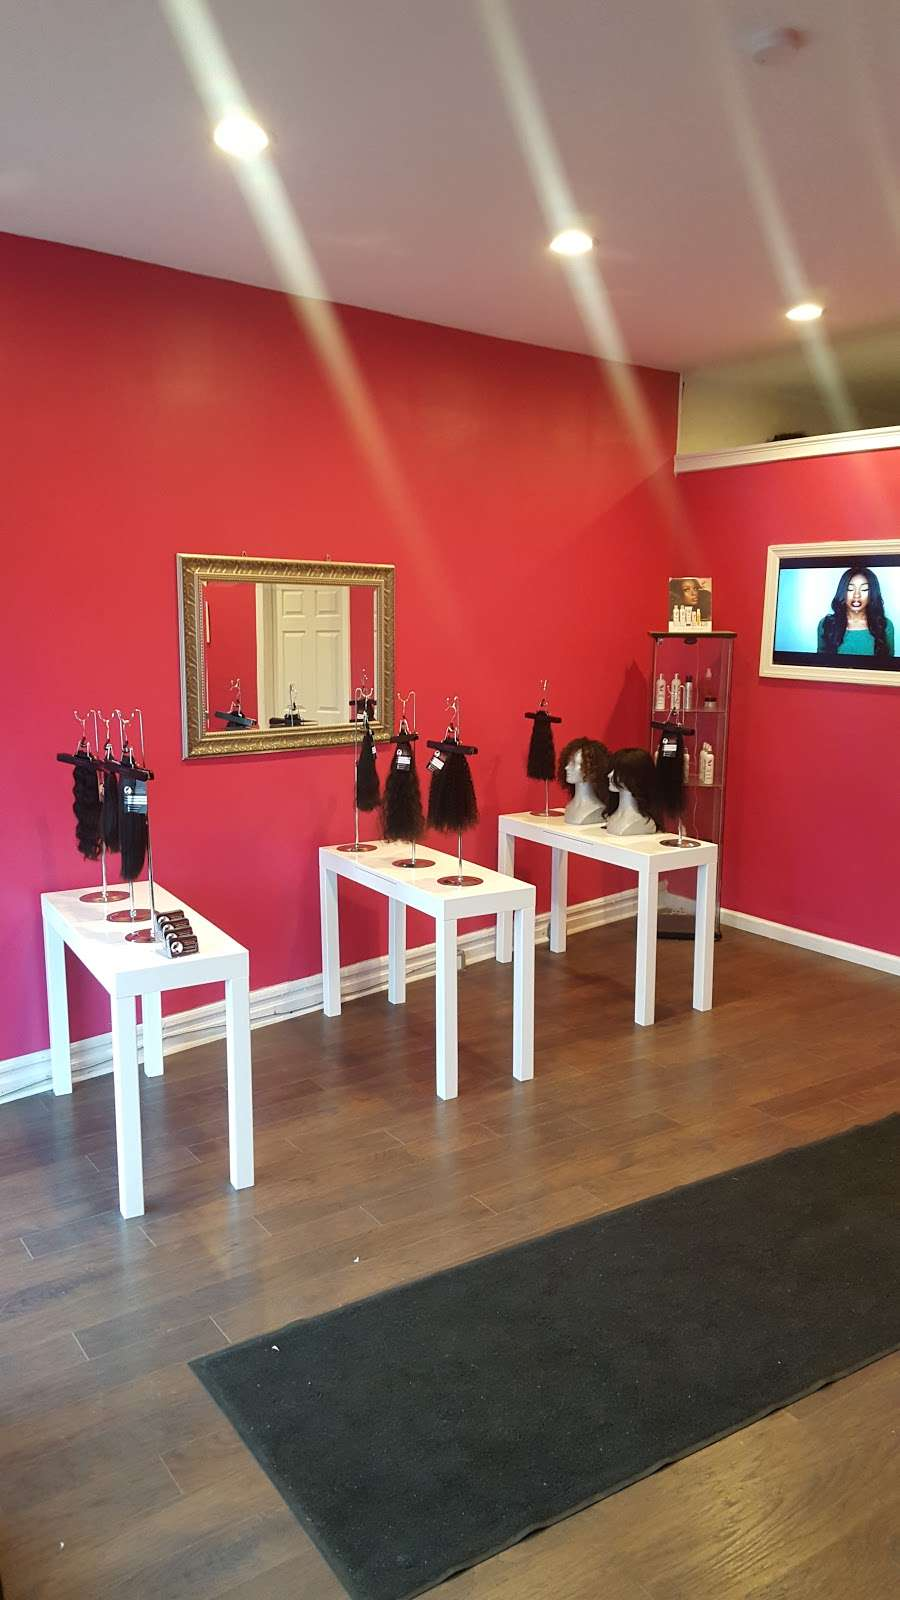 Ultimate Hair World - hair care    Photo 9 of 10   Address: 16 Molter Pl, Bloomfield, NJ 07003, USA   Phone: (973) 622-6900